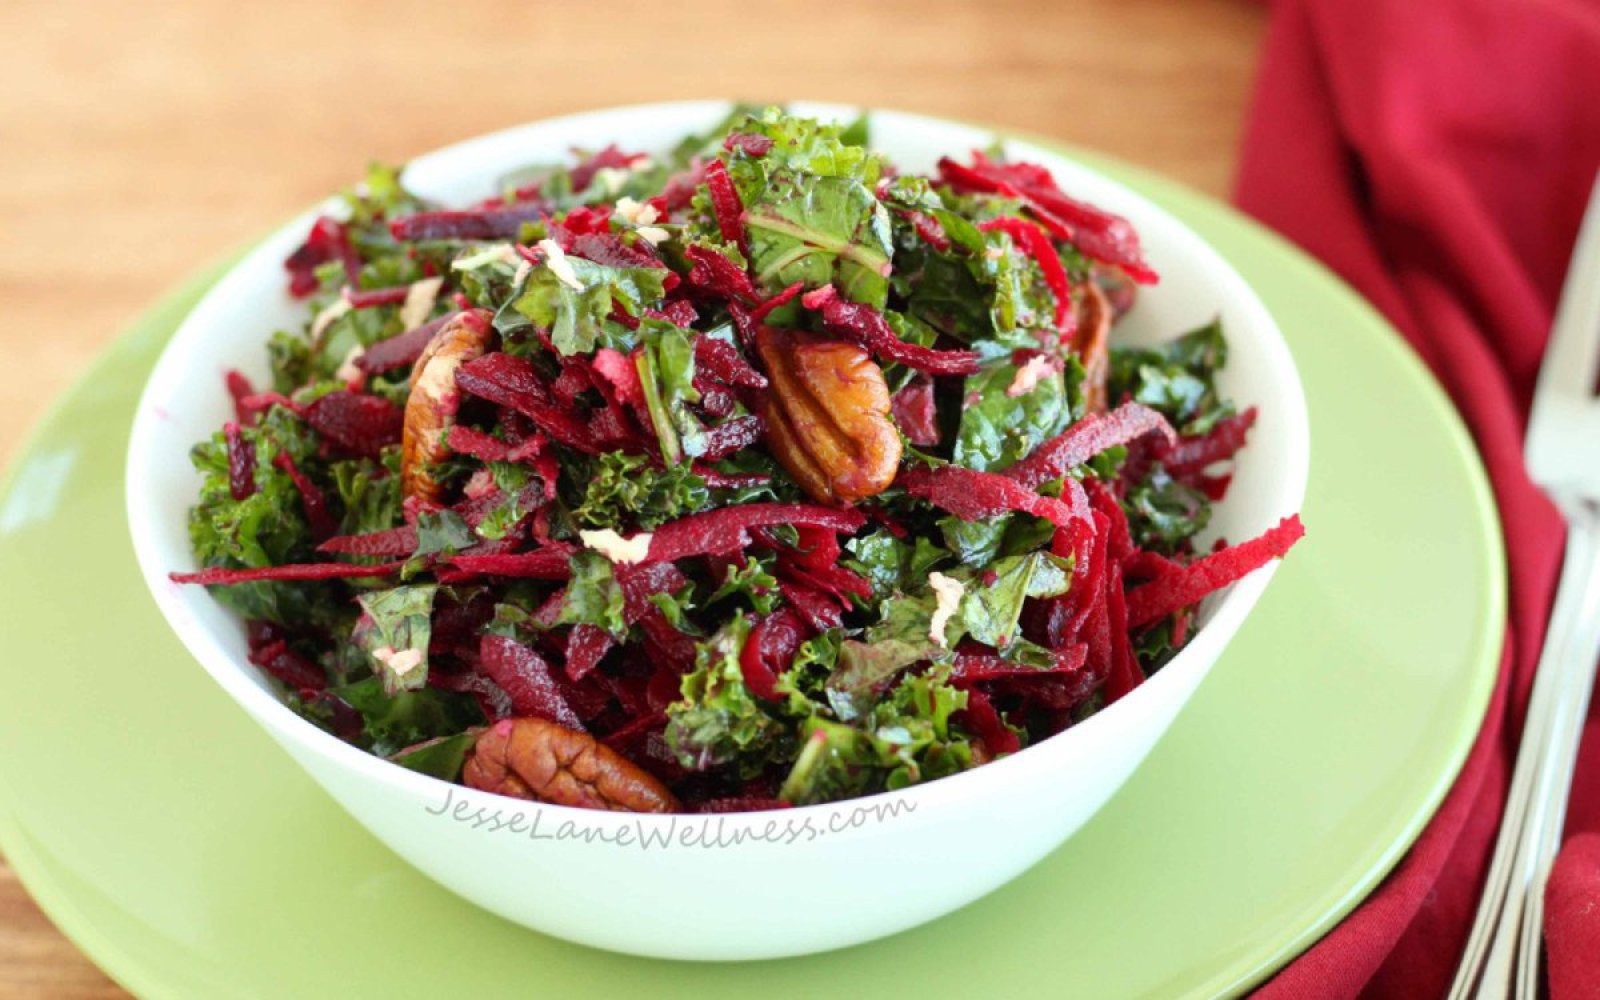 Vegan Kale, Beet, and Pecan Salad With Ginger Dressing